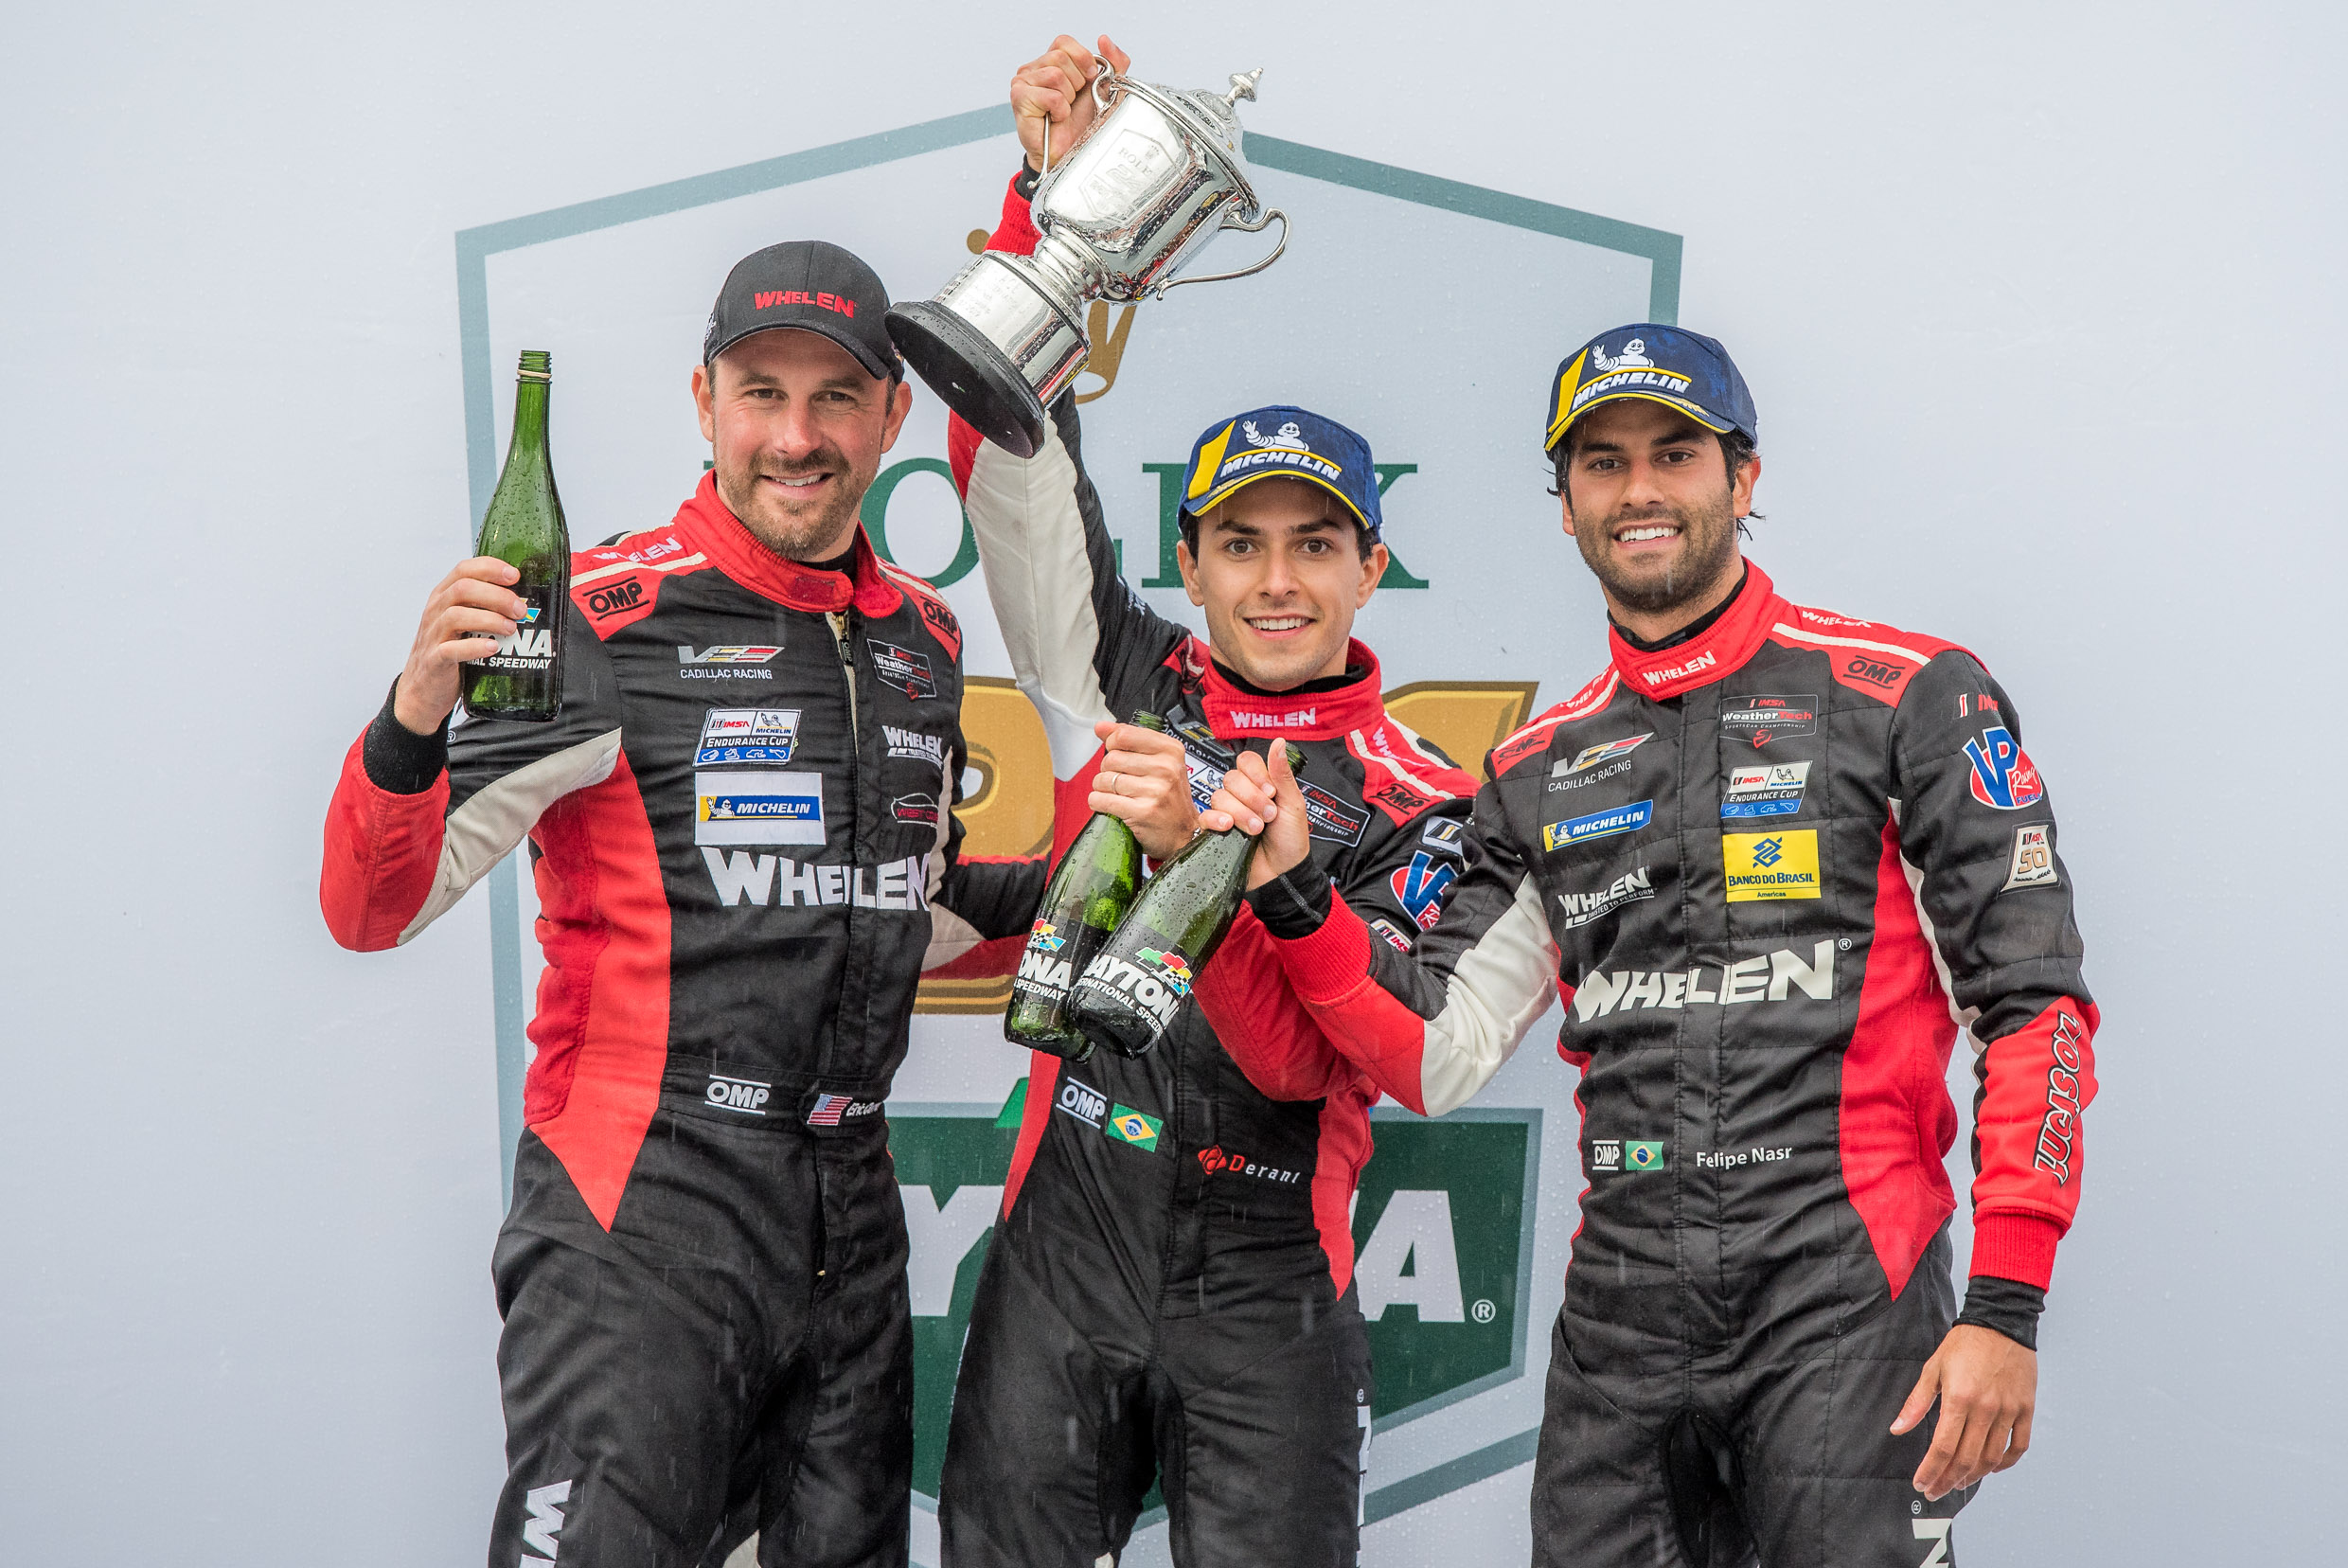 Photo of Endurance – Nasr, Derani e Curran destacam condições difíceis na conquista do pódio nas 24 Horas de Daytona